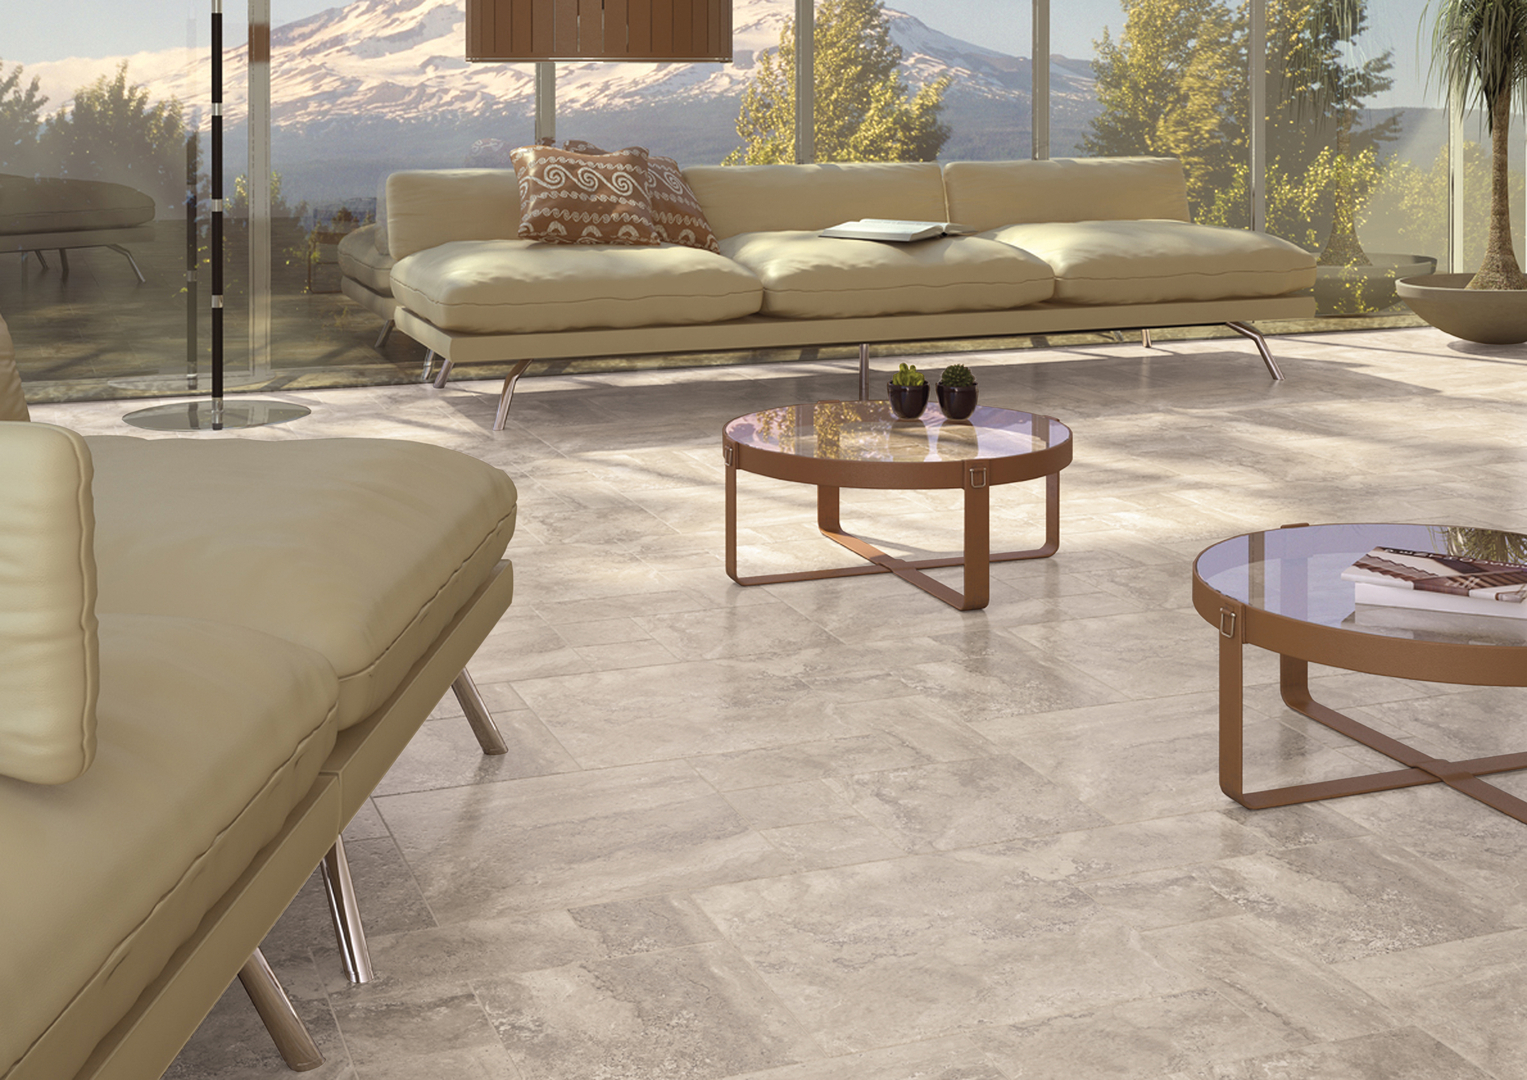 Buy La Platera Tiles Online | The Scavo Series: Porcelain Stoneware ...